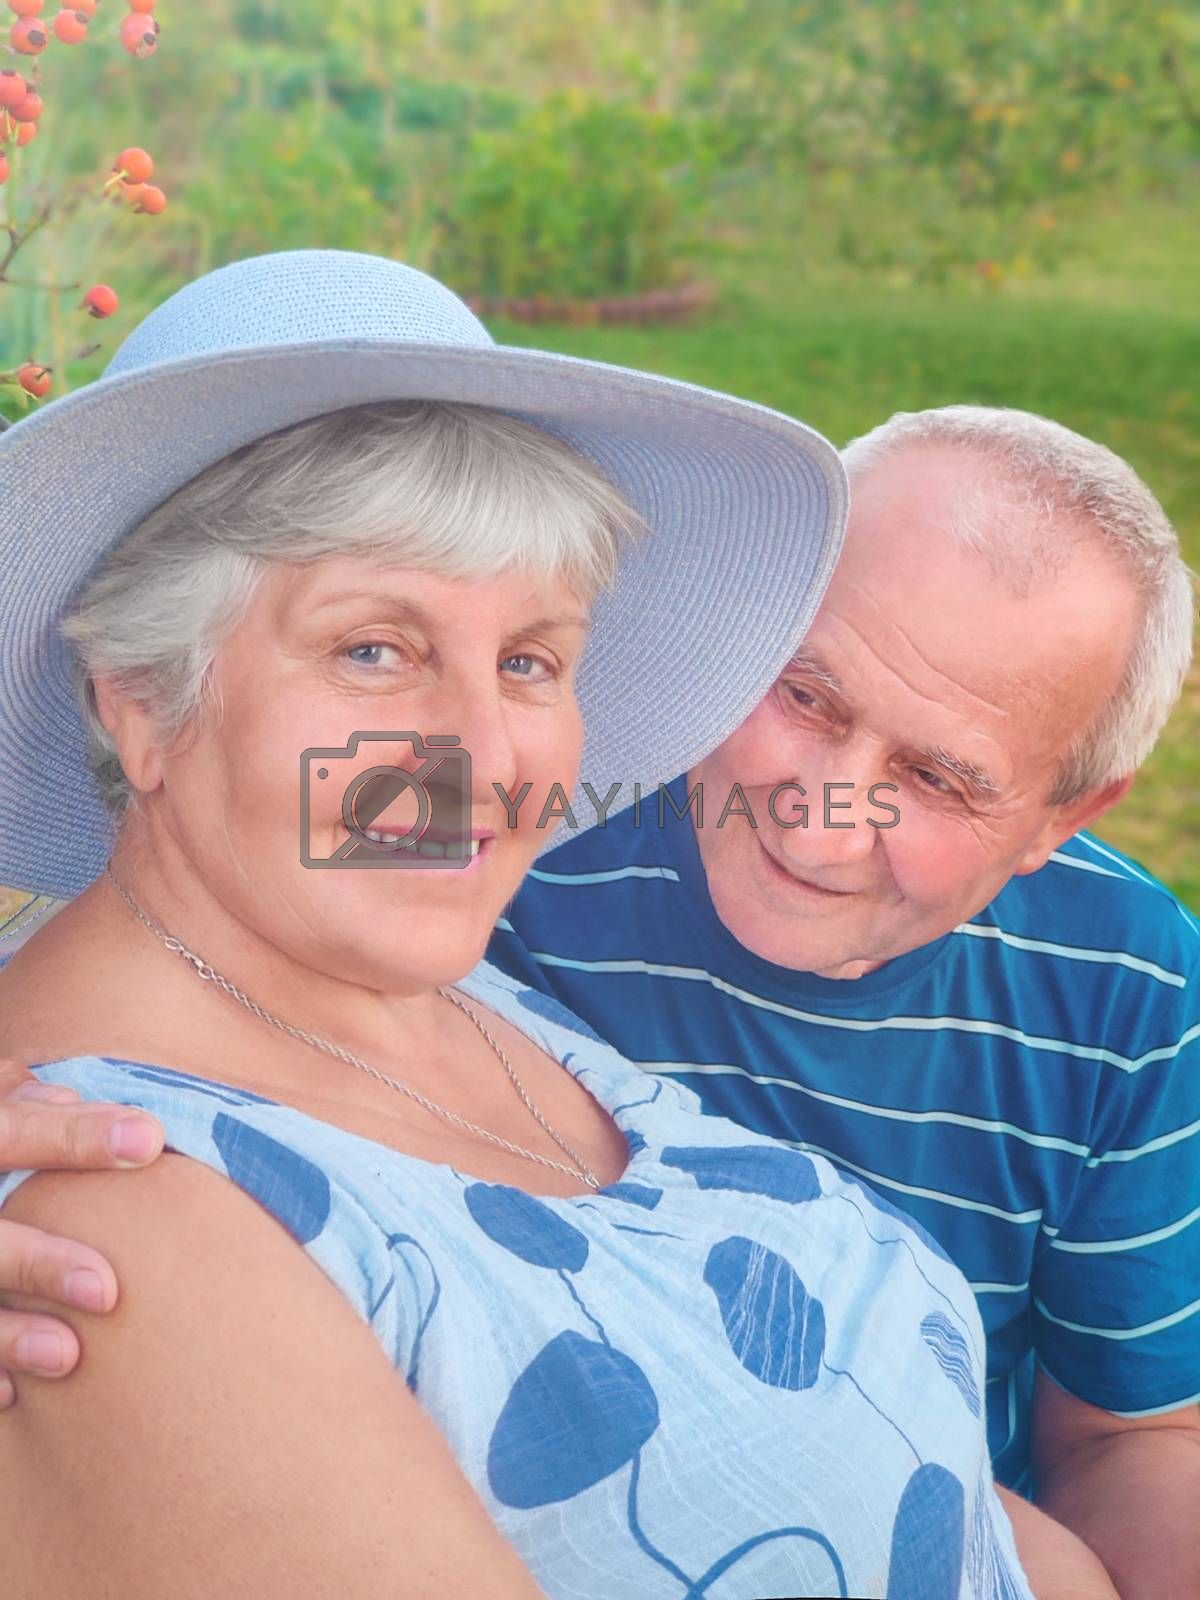 Authentic outdoor shot of aging couple having fun in the garden and blessed with love. During their game man is trying to kiss his partner and she is laughing out loud. Love and family concept. by Nickstock